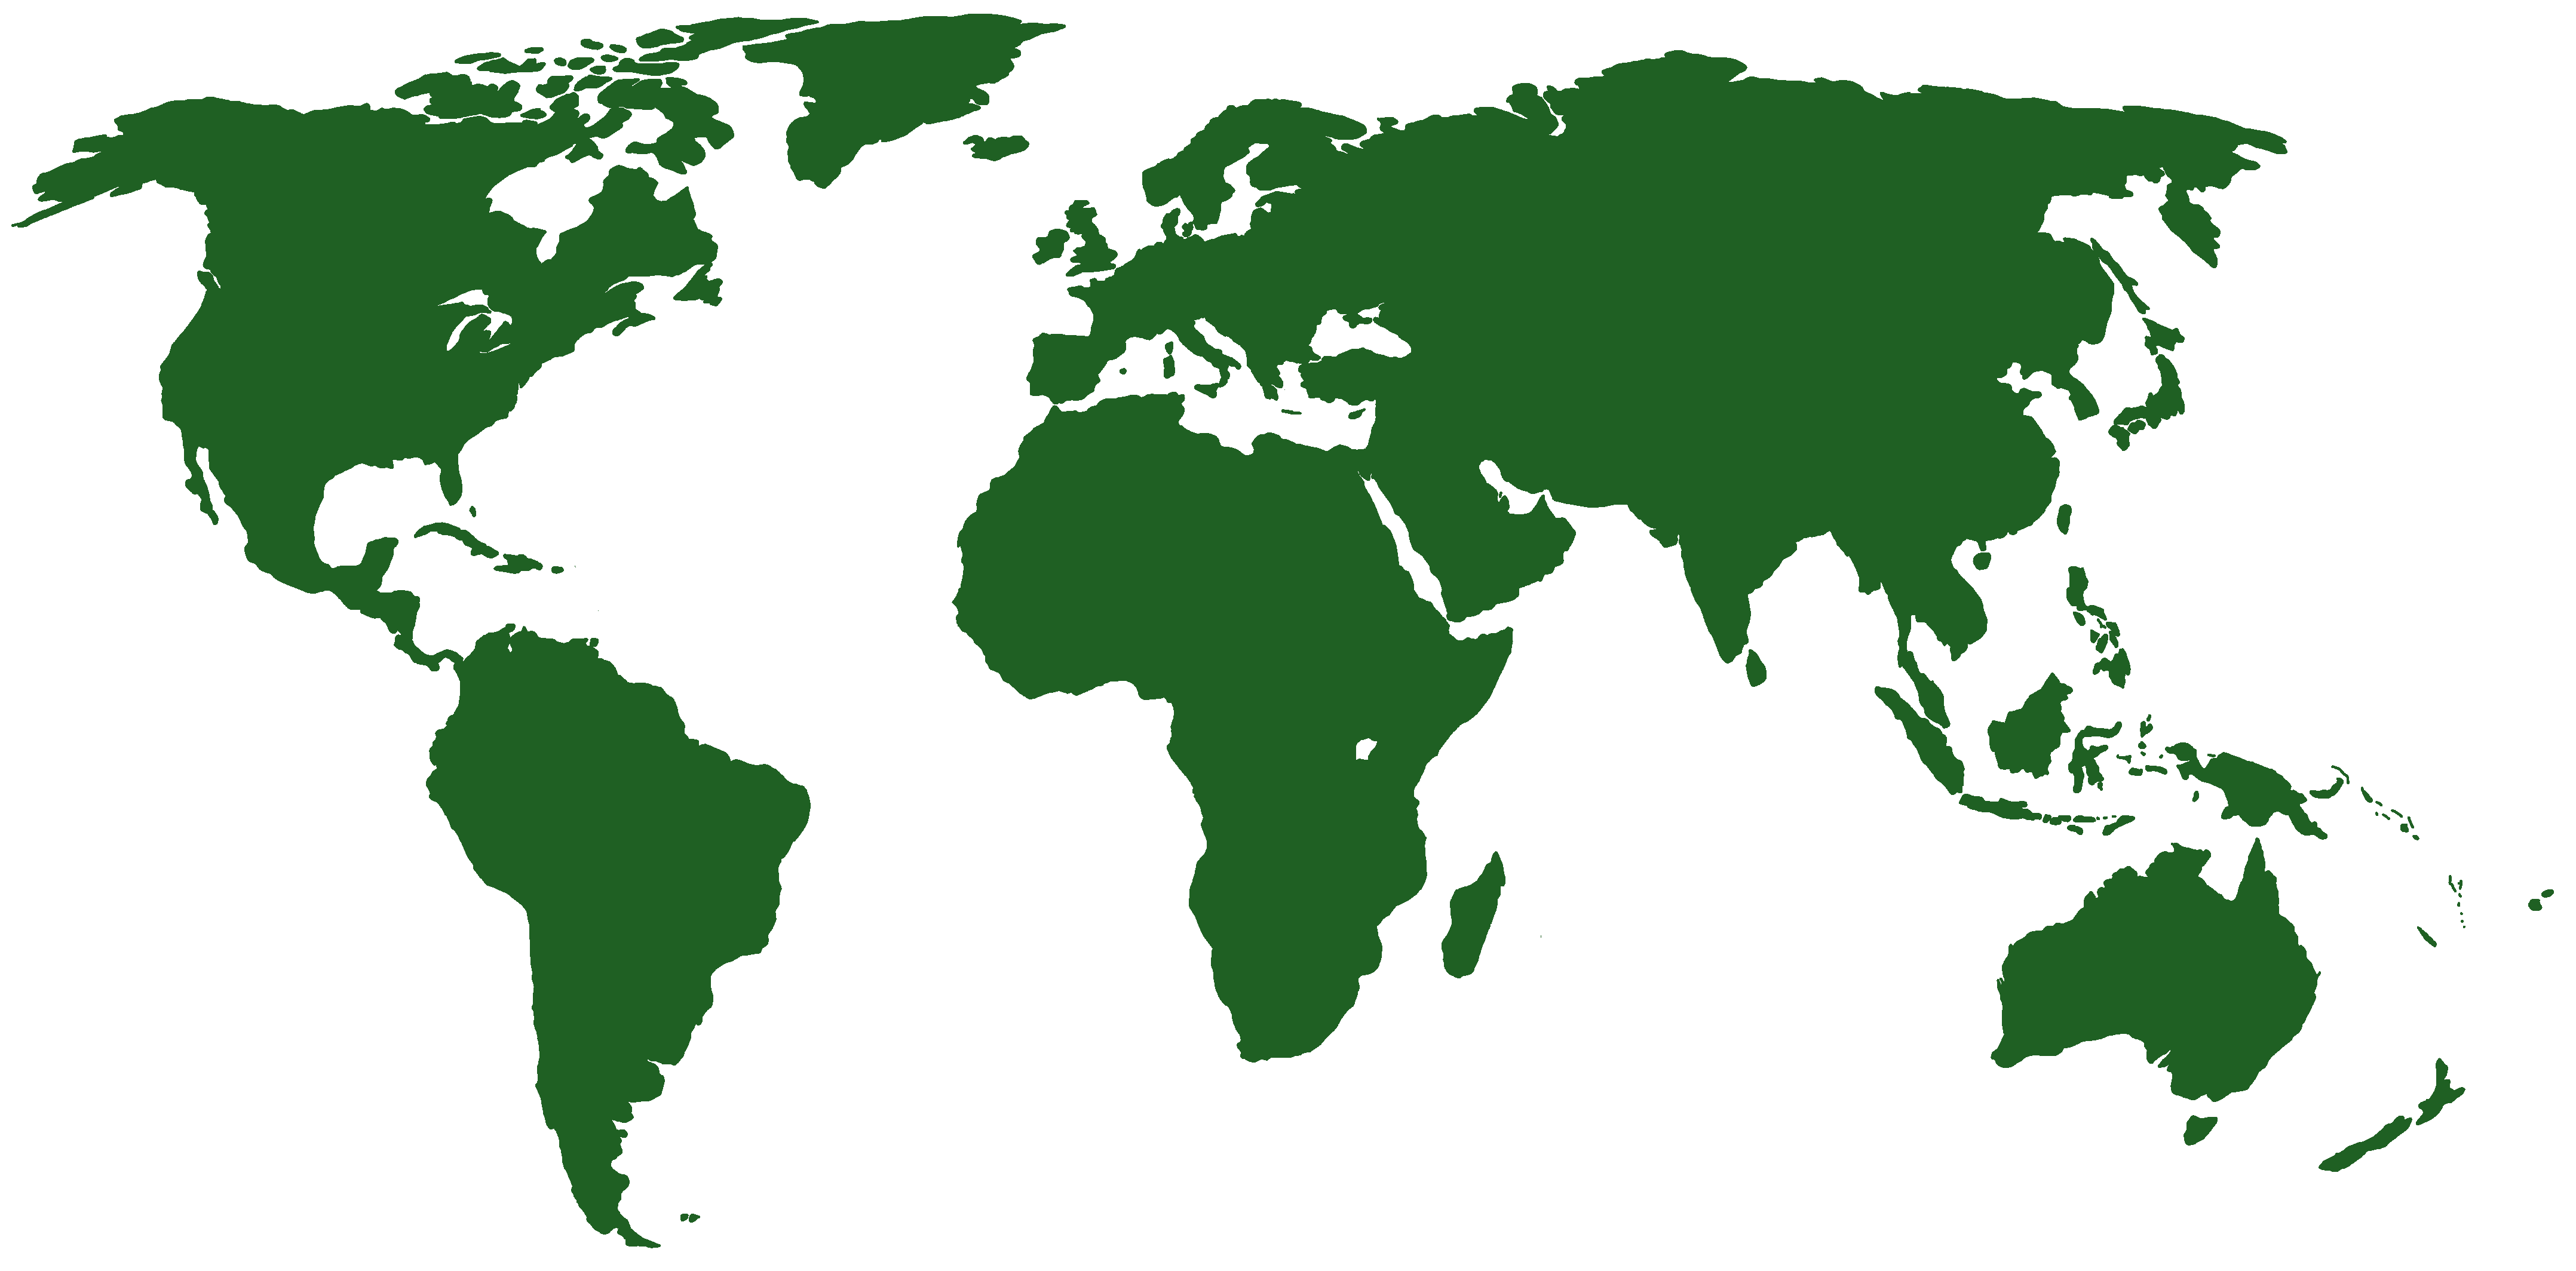 File:World map green.png.